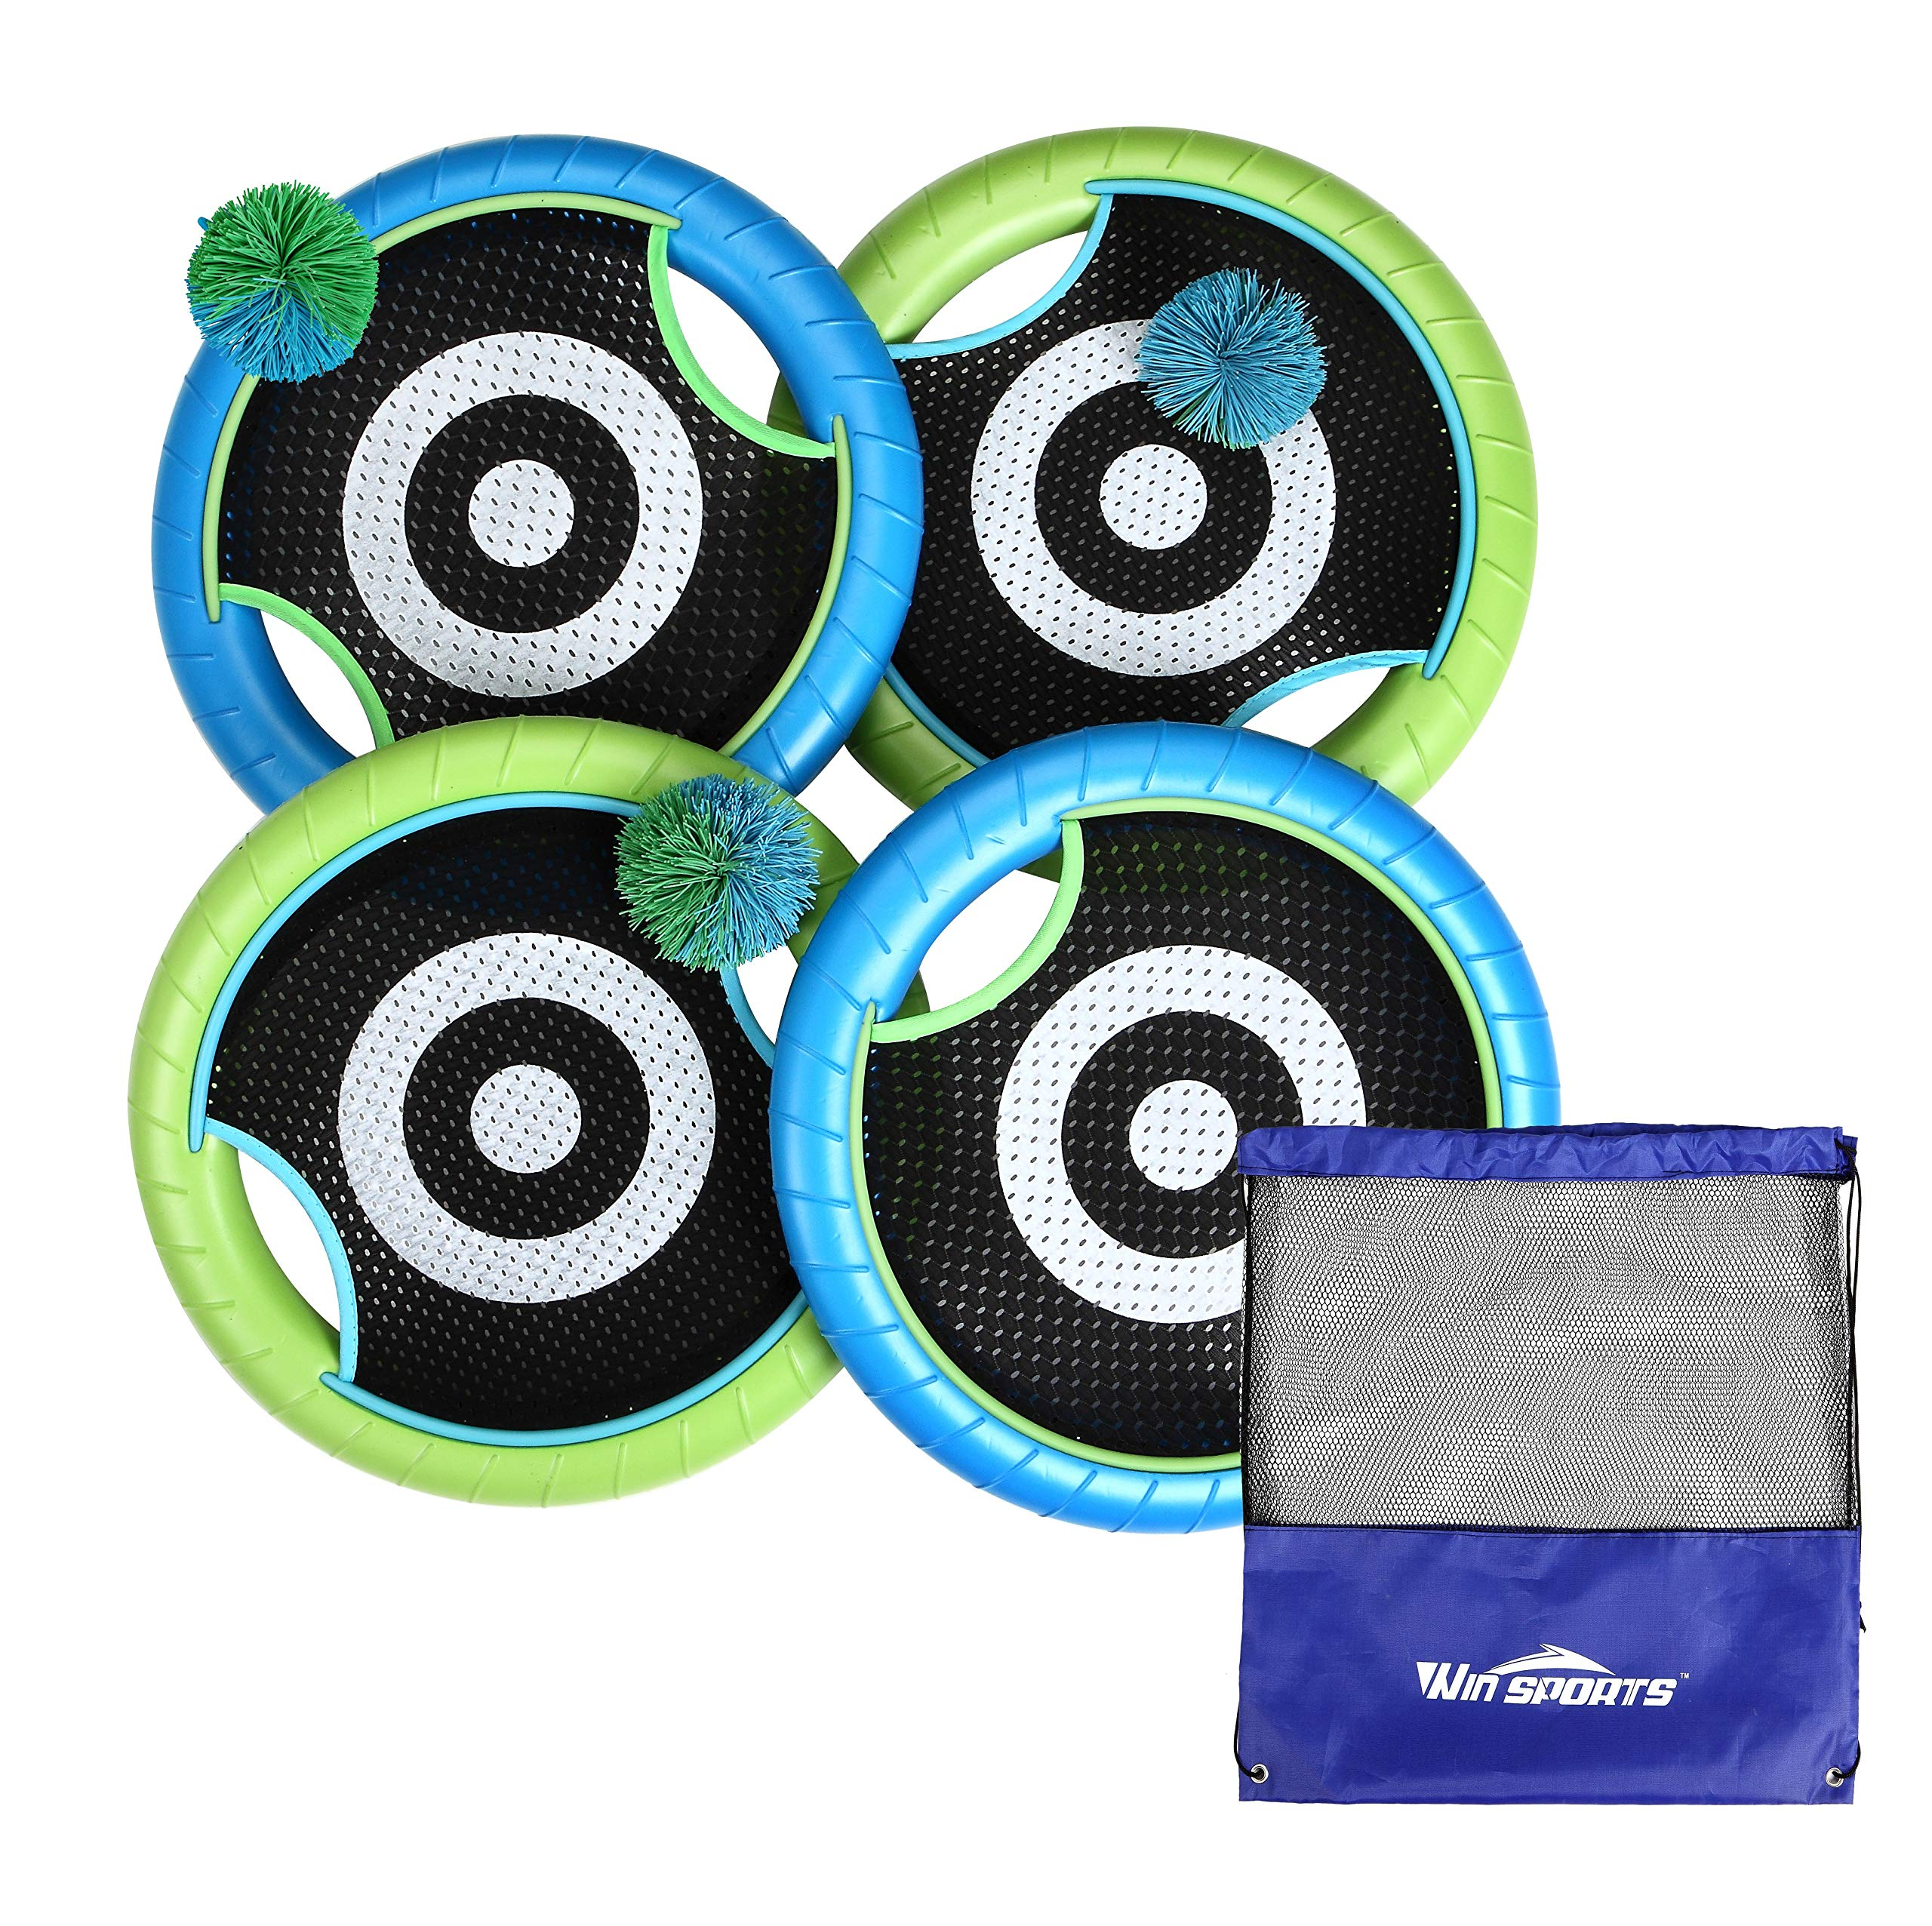 Win SPORTS Deluxe Trampoline Paddle Ball Flying Discs, Super Bounce-Back Family Game Set (4 Paddles & 3 Balls & Storage Bag) by Win SPORTS